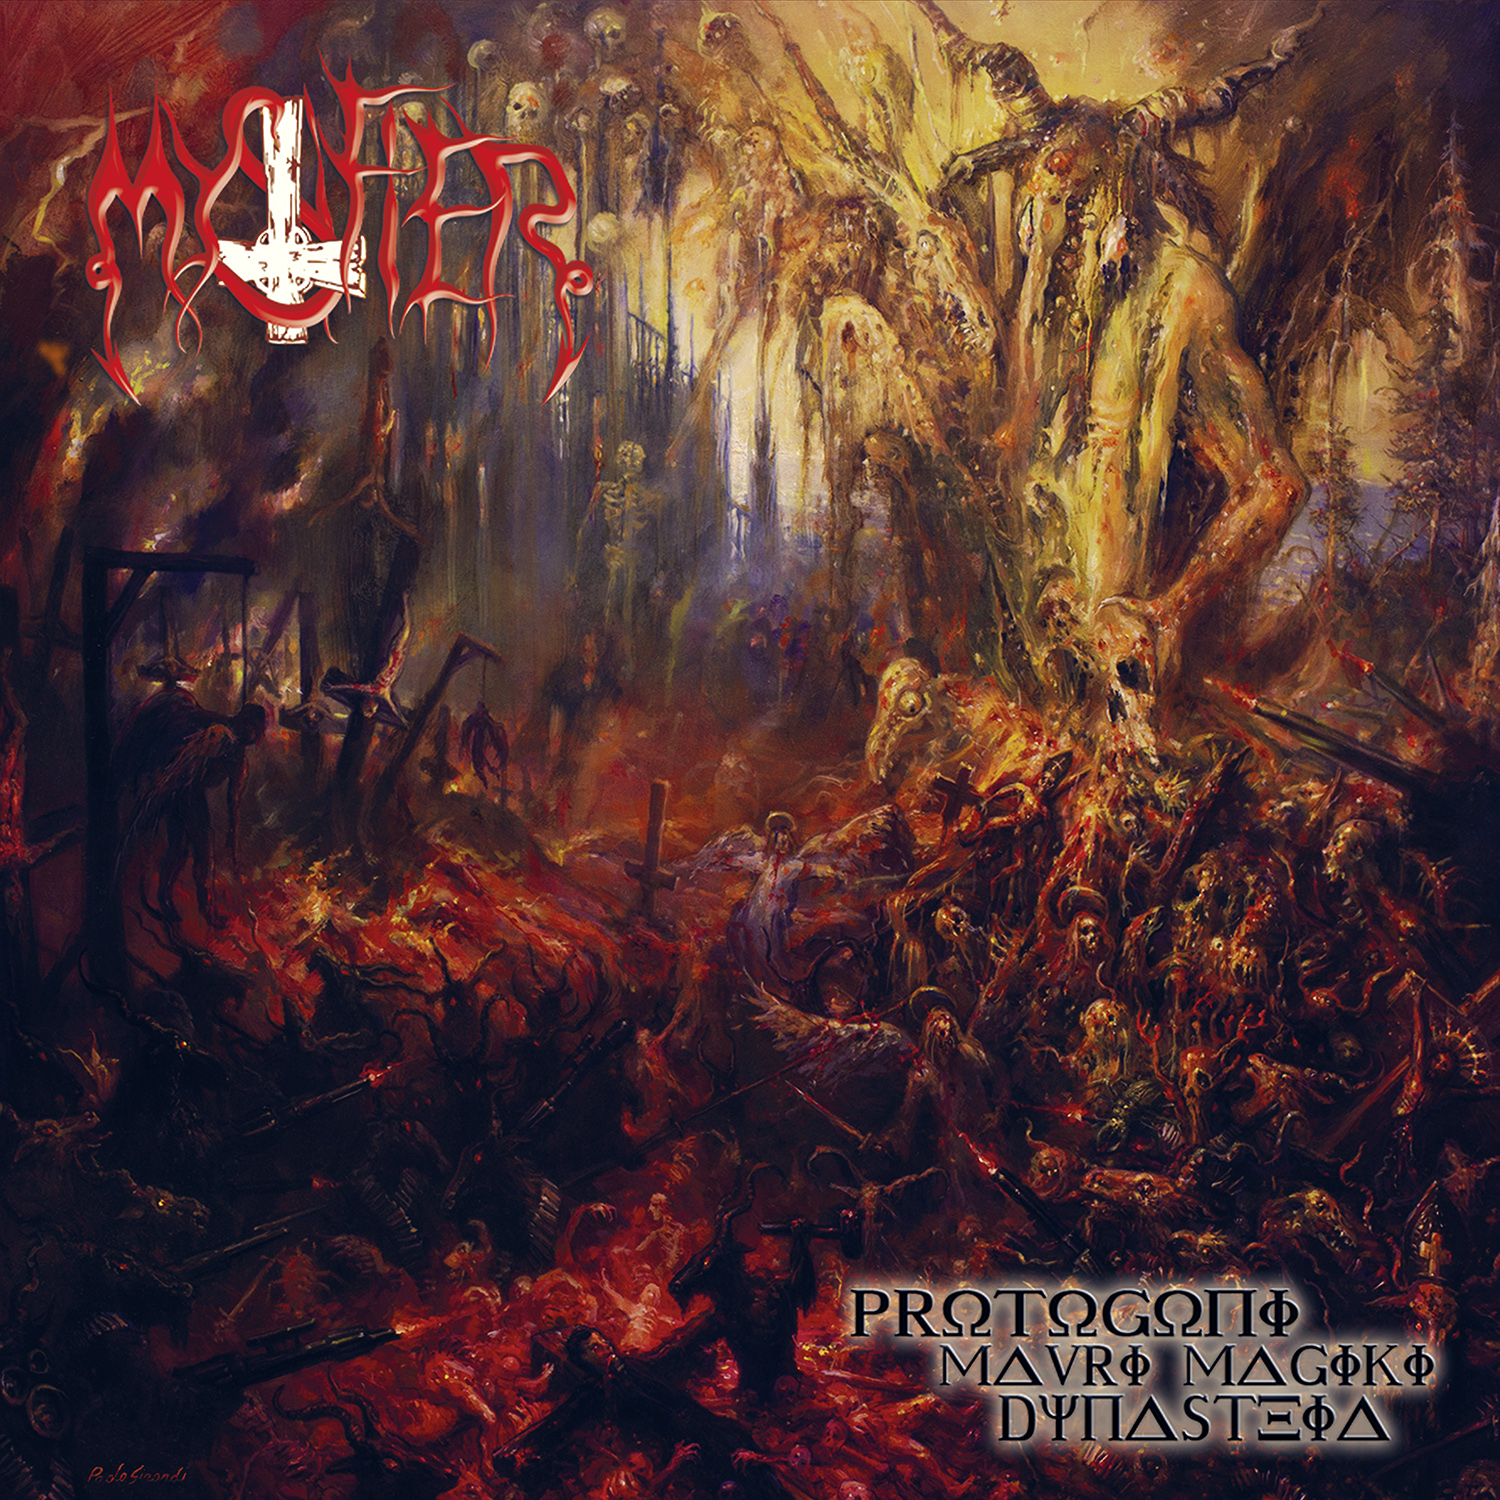 "Protogoni Mavri Magiki Dynasteia by Mystifier - ""For many Christians that already heard part of the legacy of MYSTIFIER, the mention of that name makes to come to the mind:"